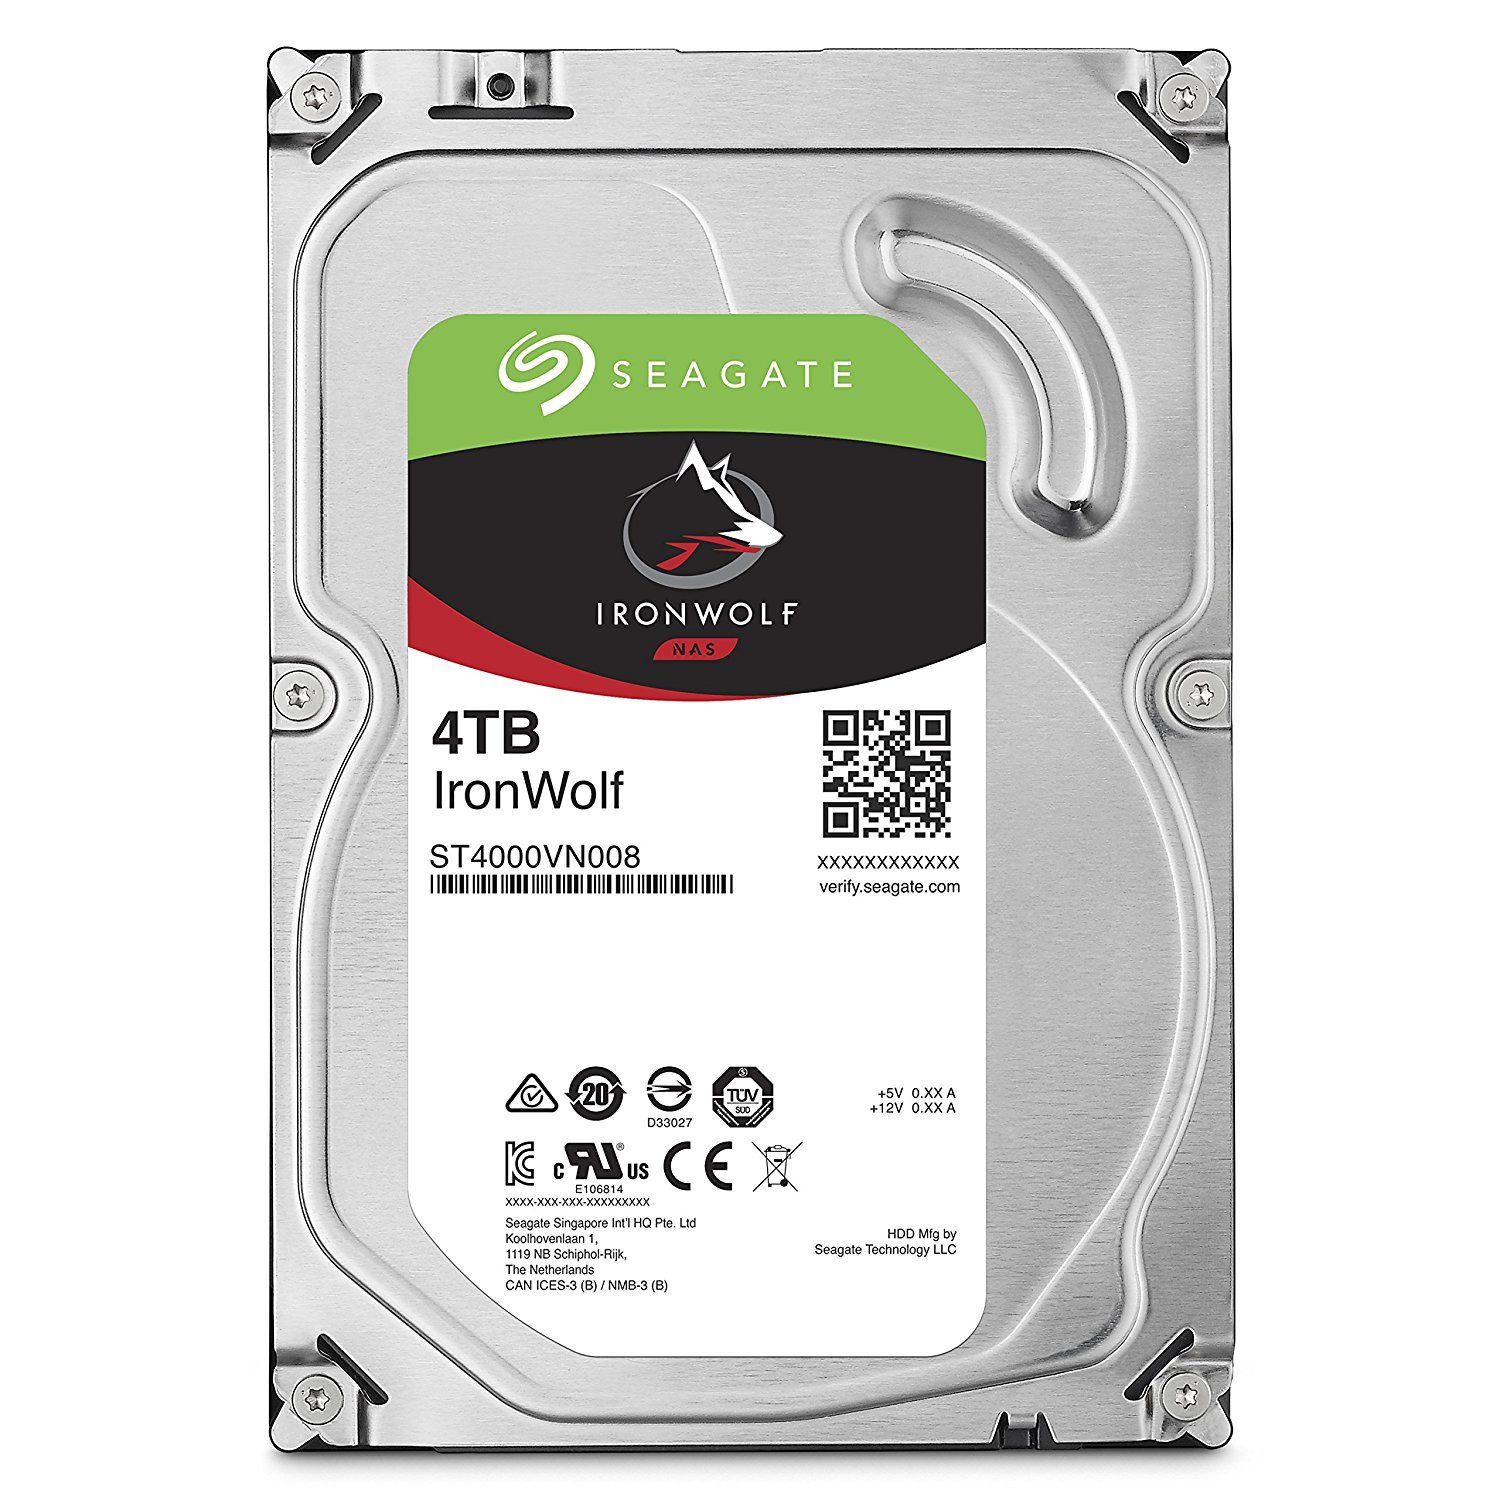 Seagate IronWolf 4TB NAS HDD